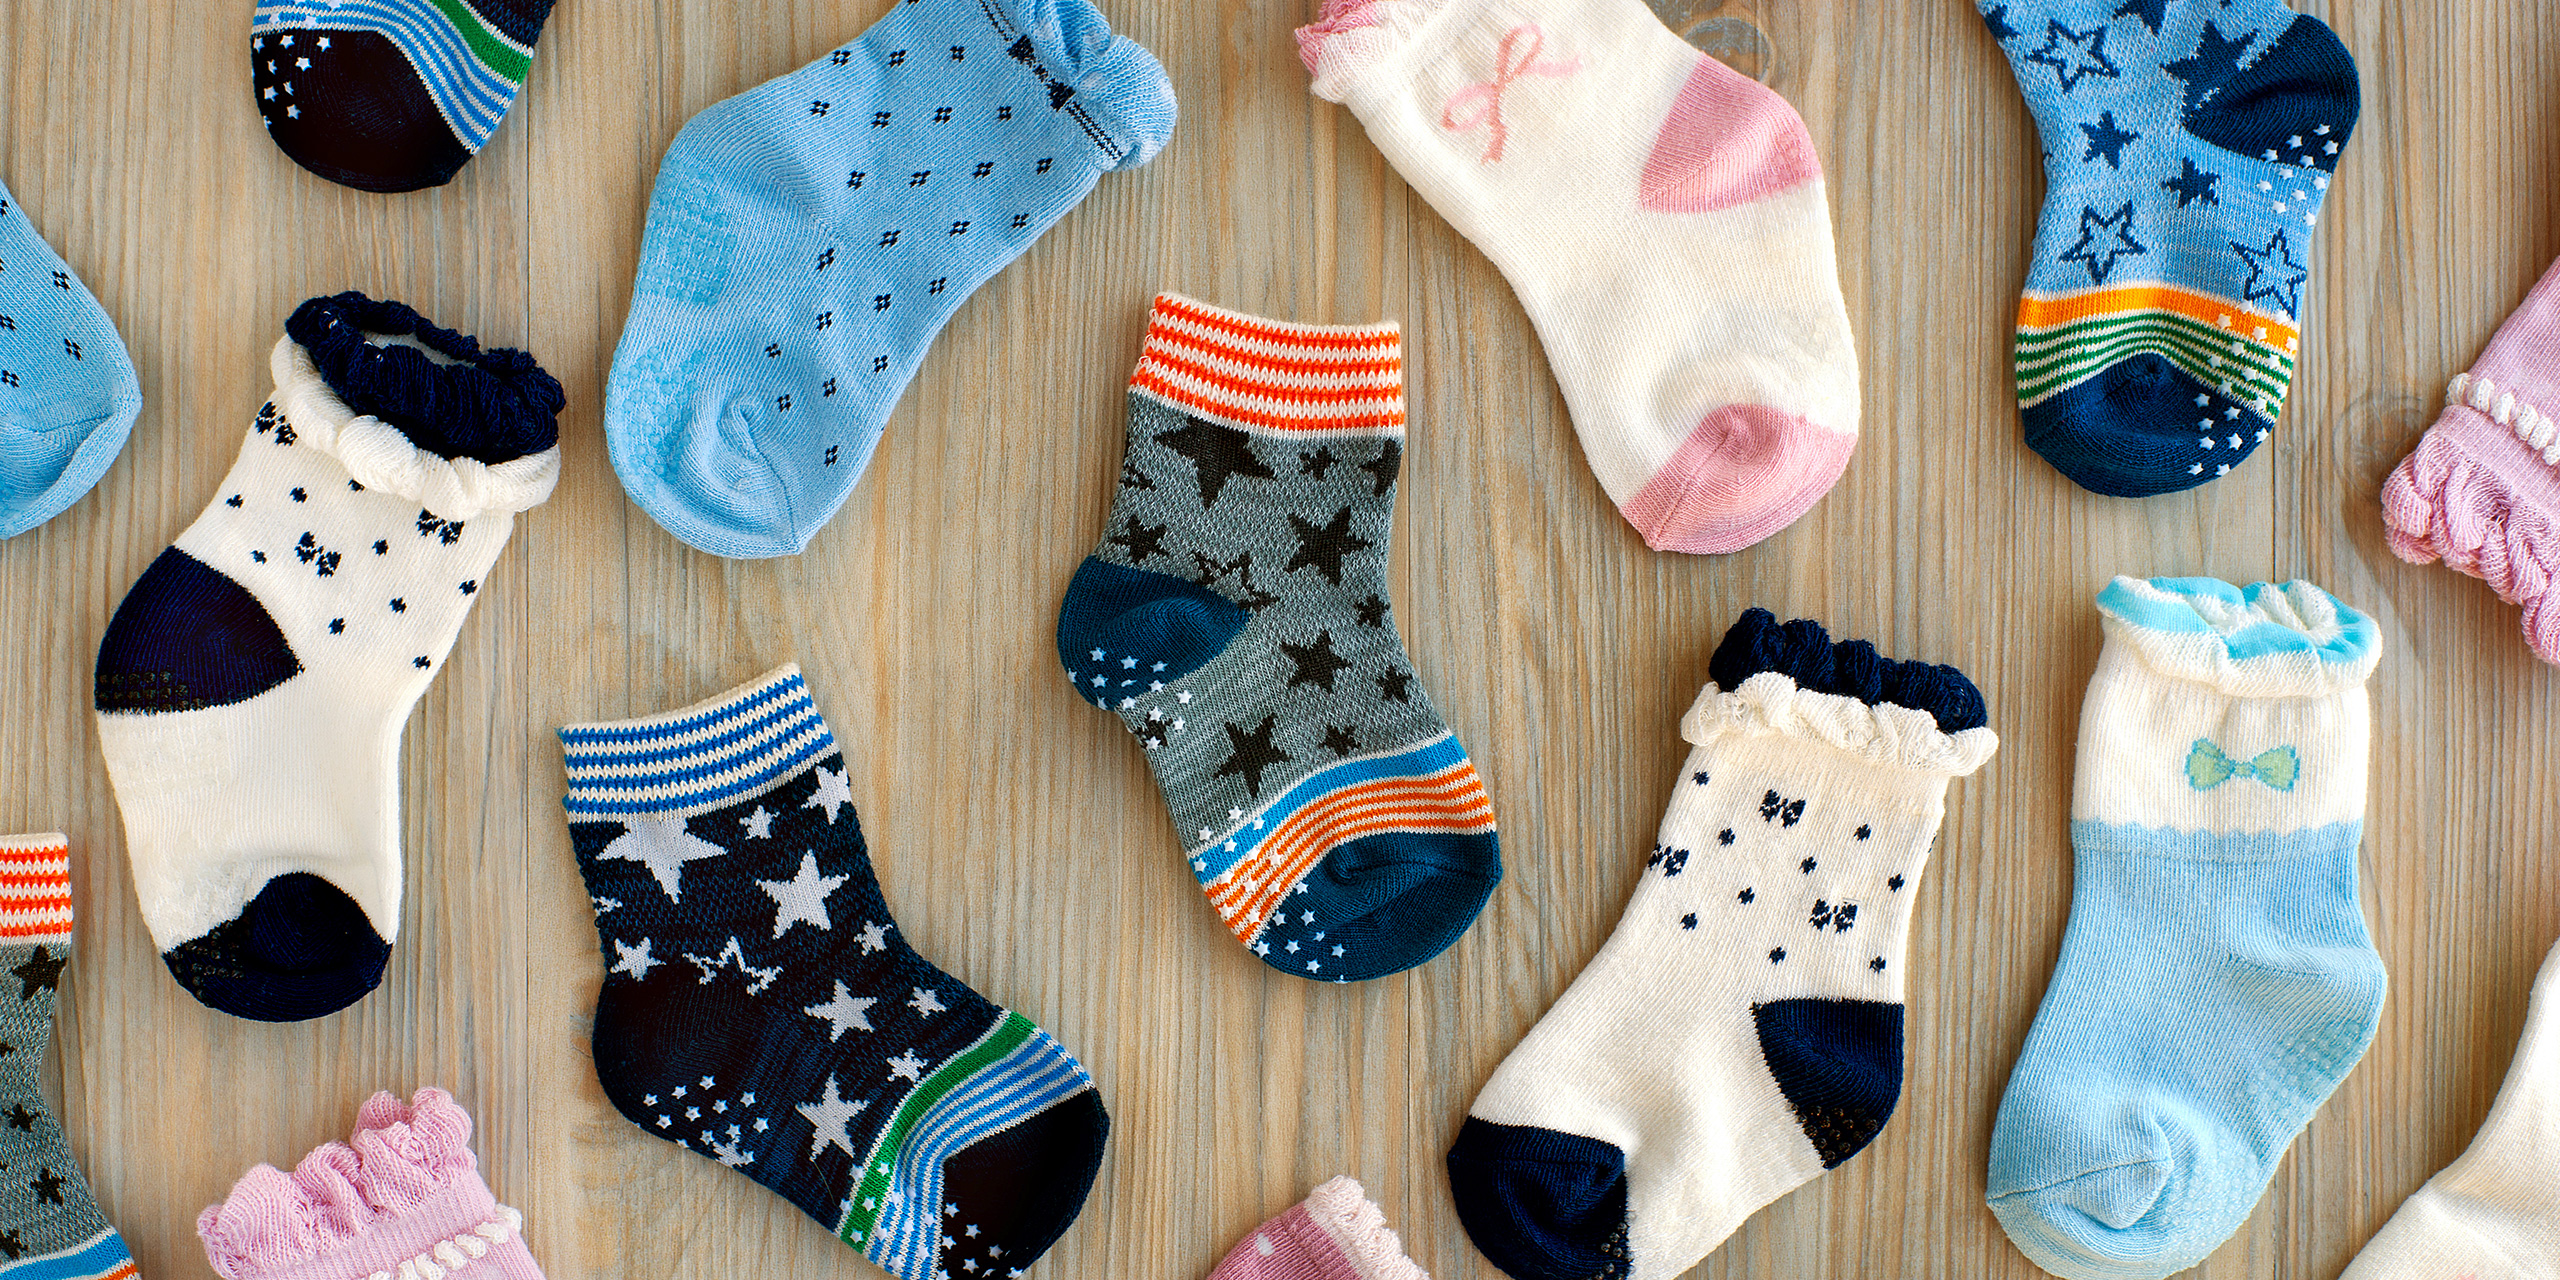 baby socks flat lay on a table top; Courtesy of Evgeniya369/Shutterstock